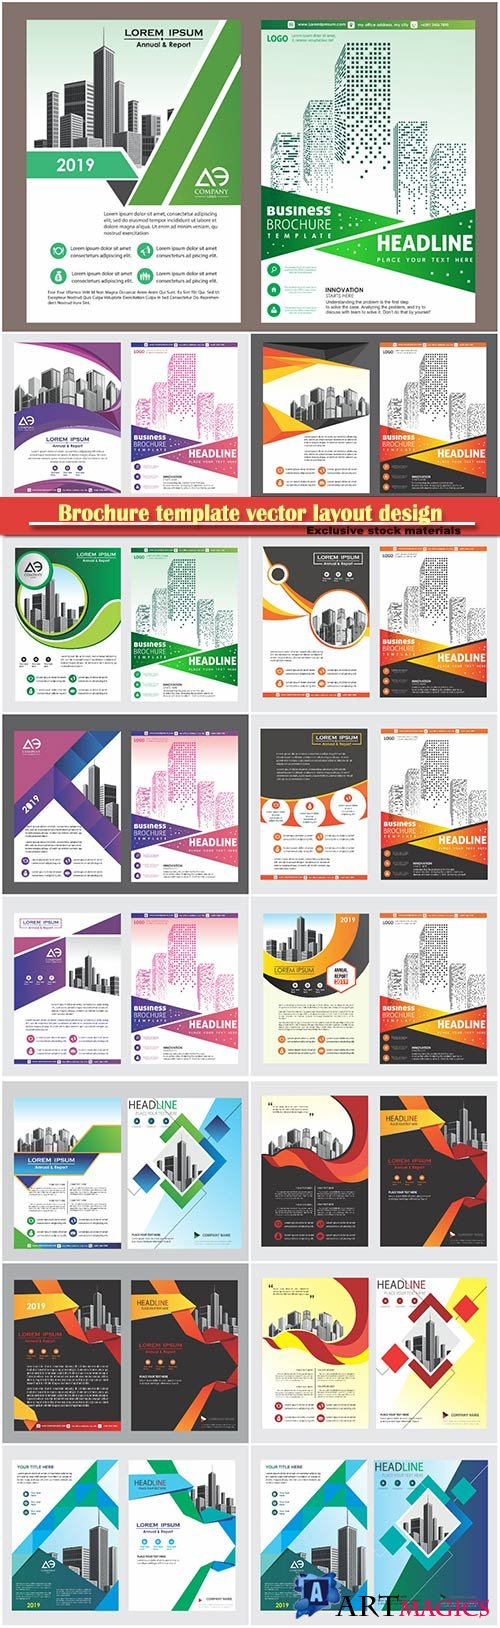 Brochure template vector layout design, corporate business annual report, magazine, flyer mockup # 209